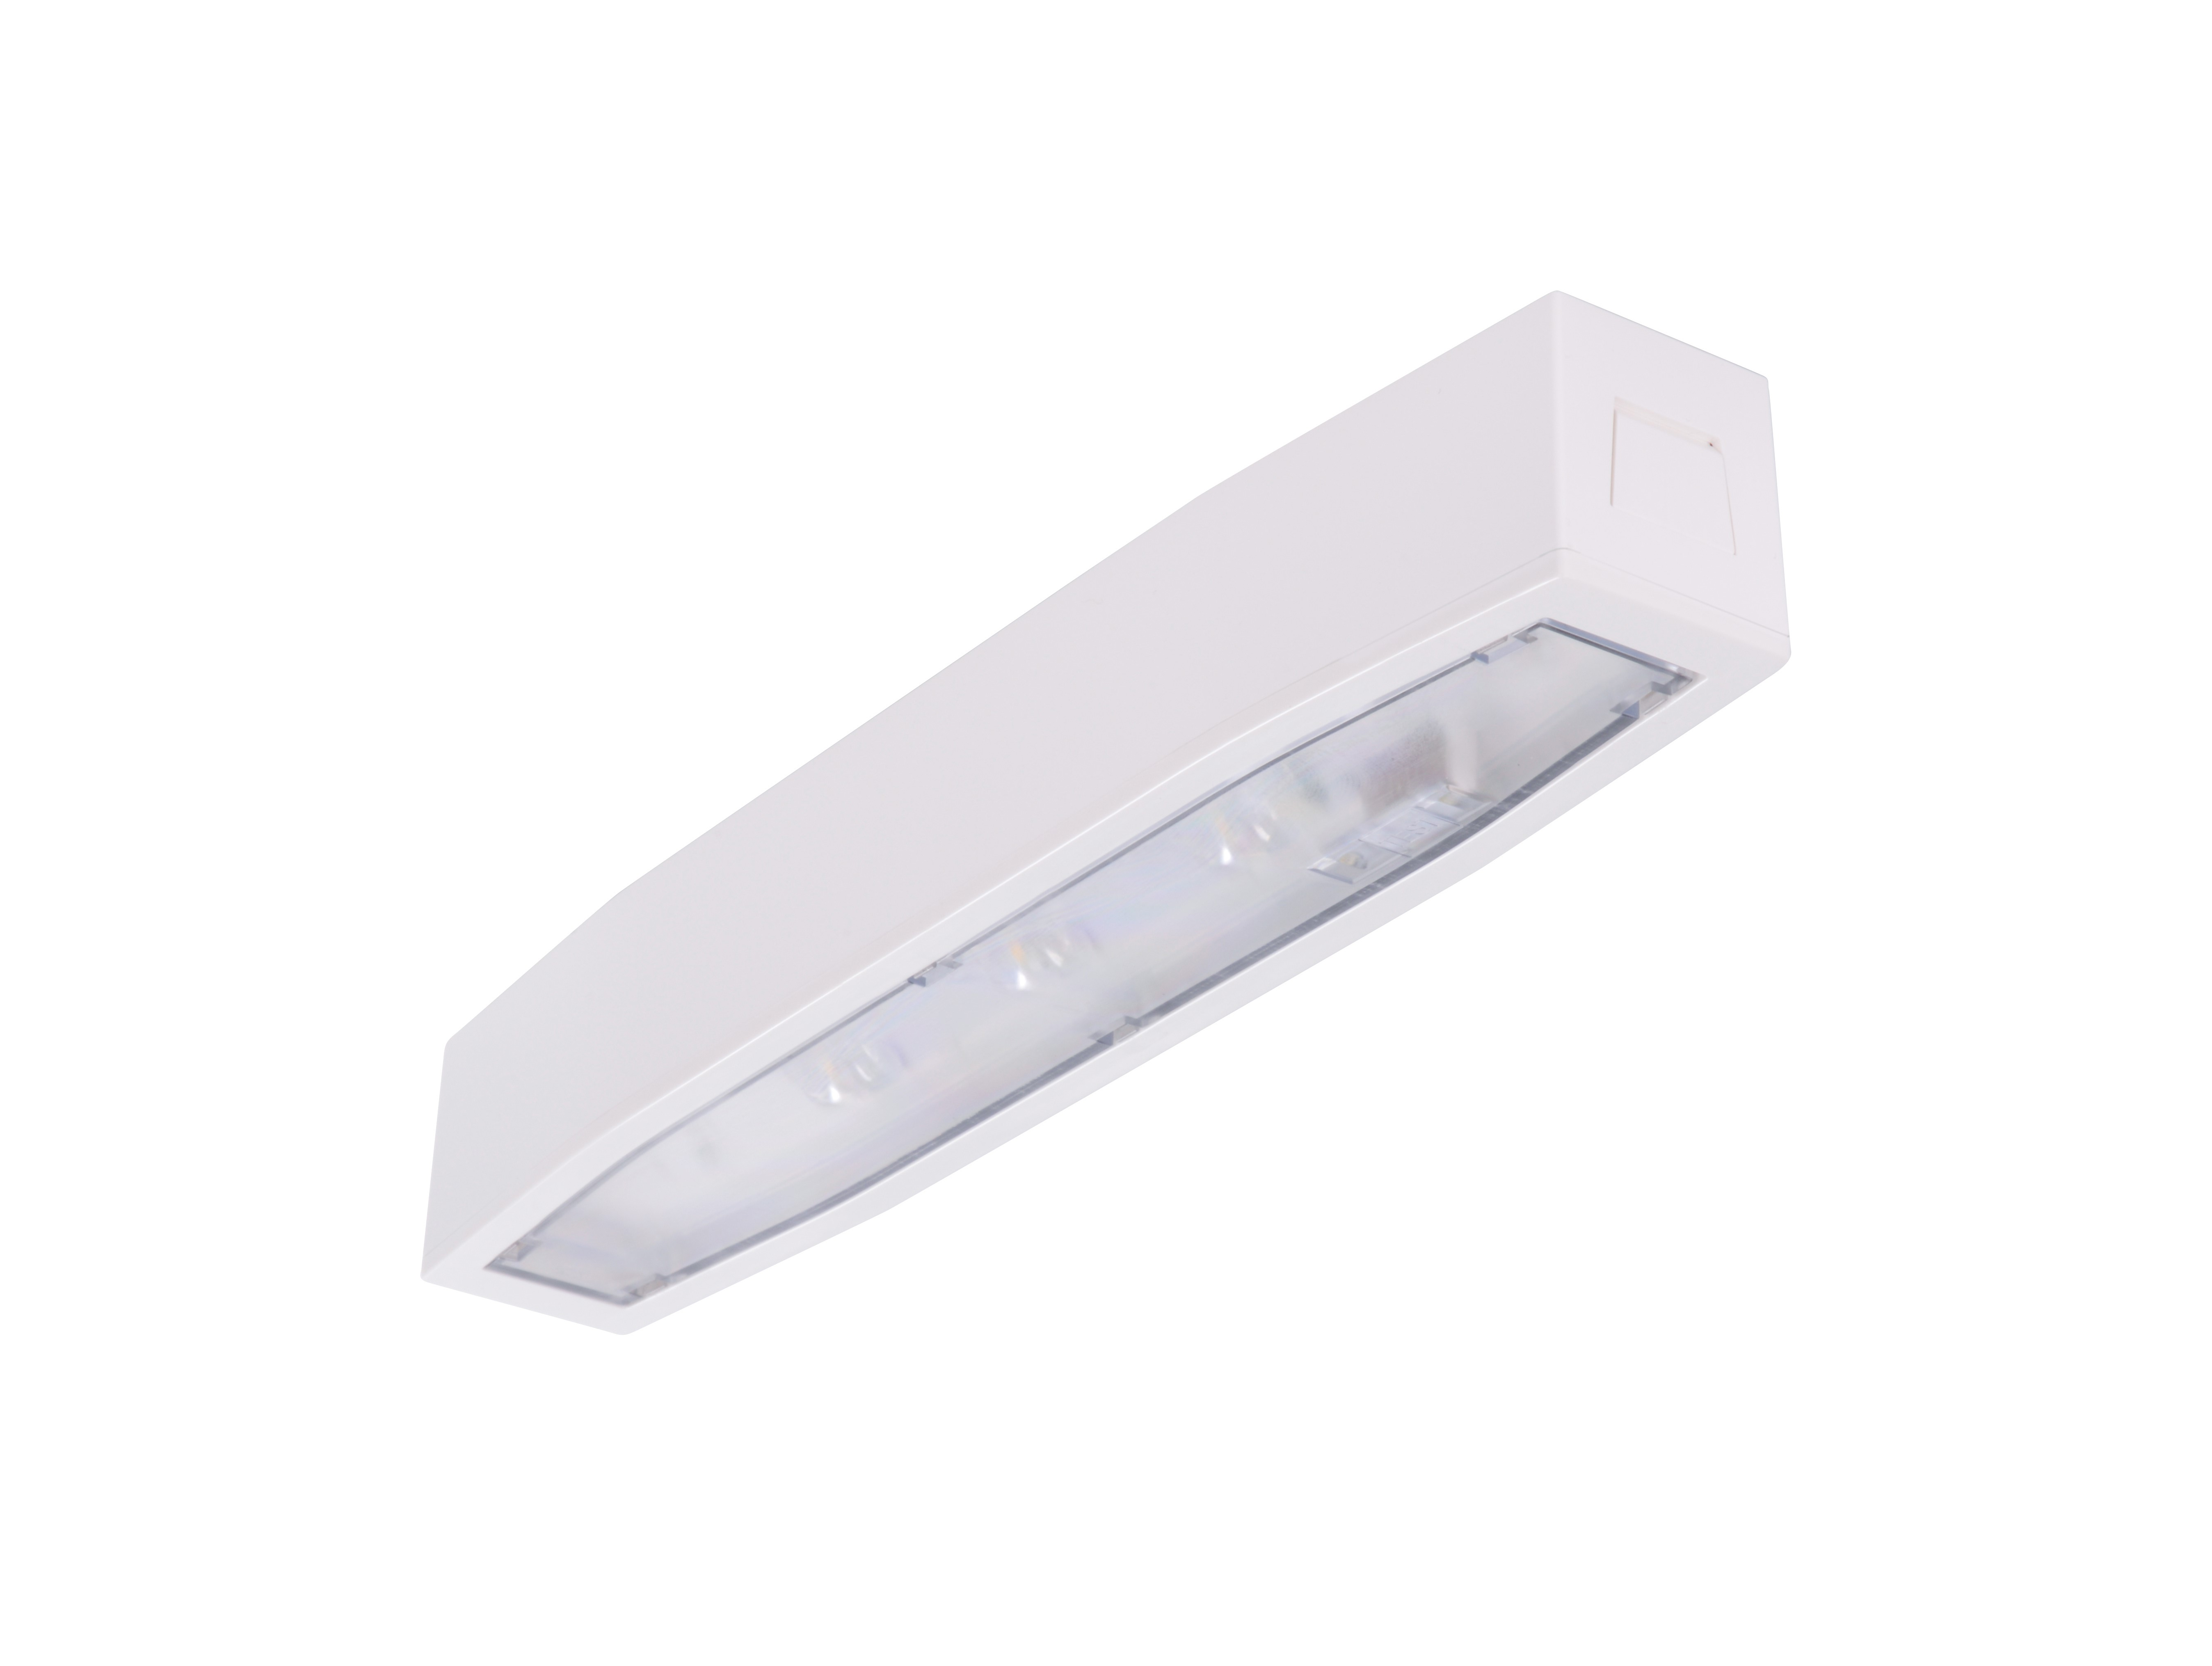 Lampa antipanica led Intelight 94721   2h nementinut test automat 0